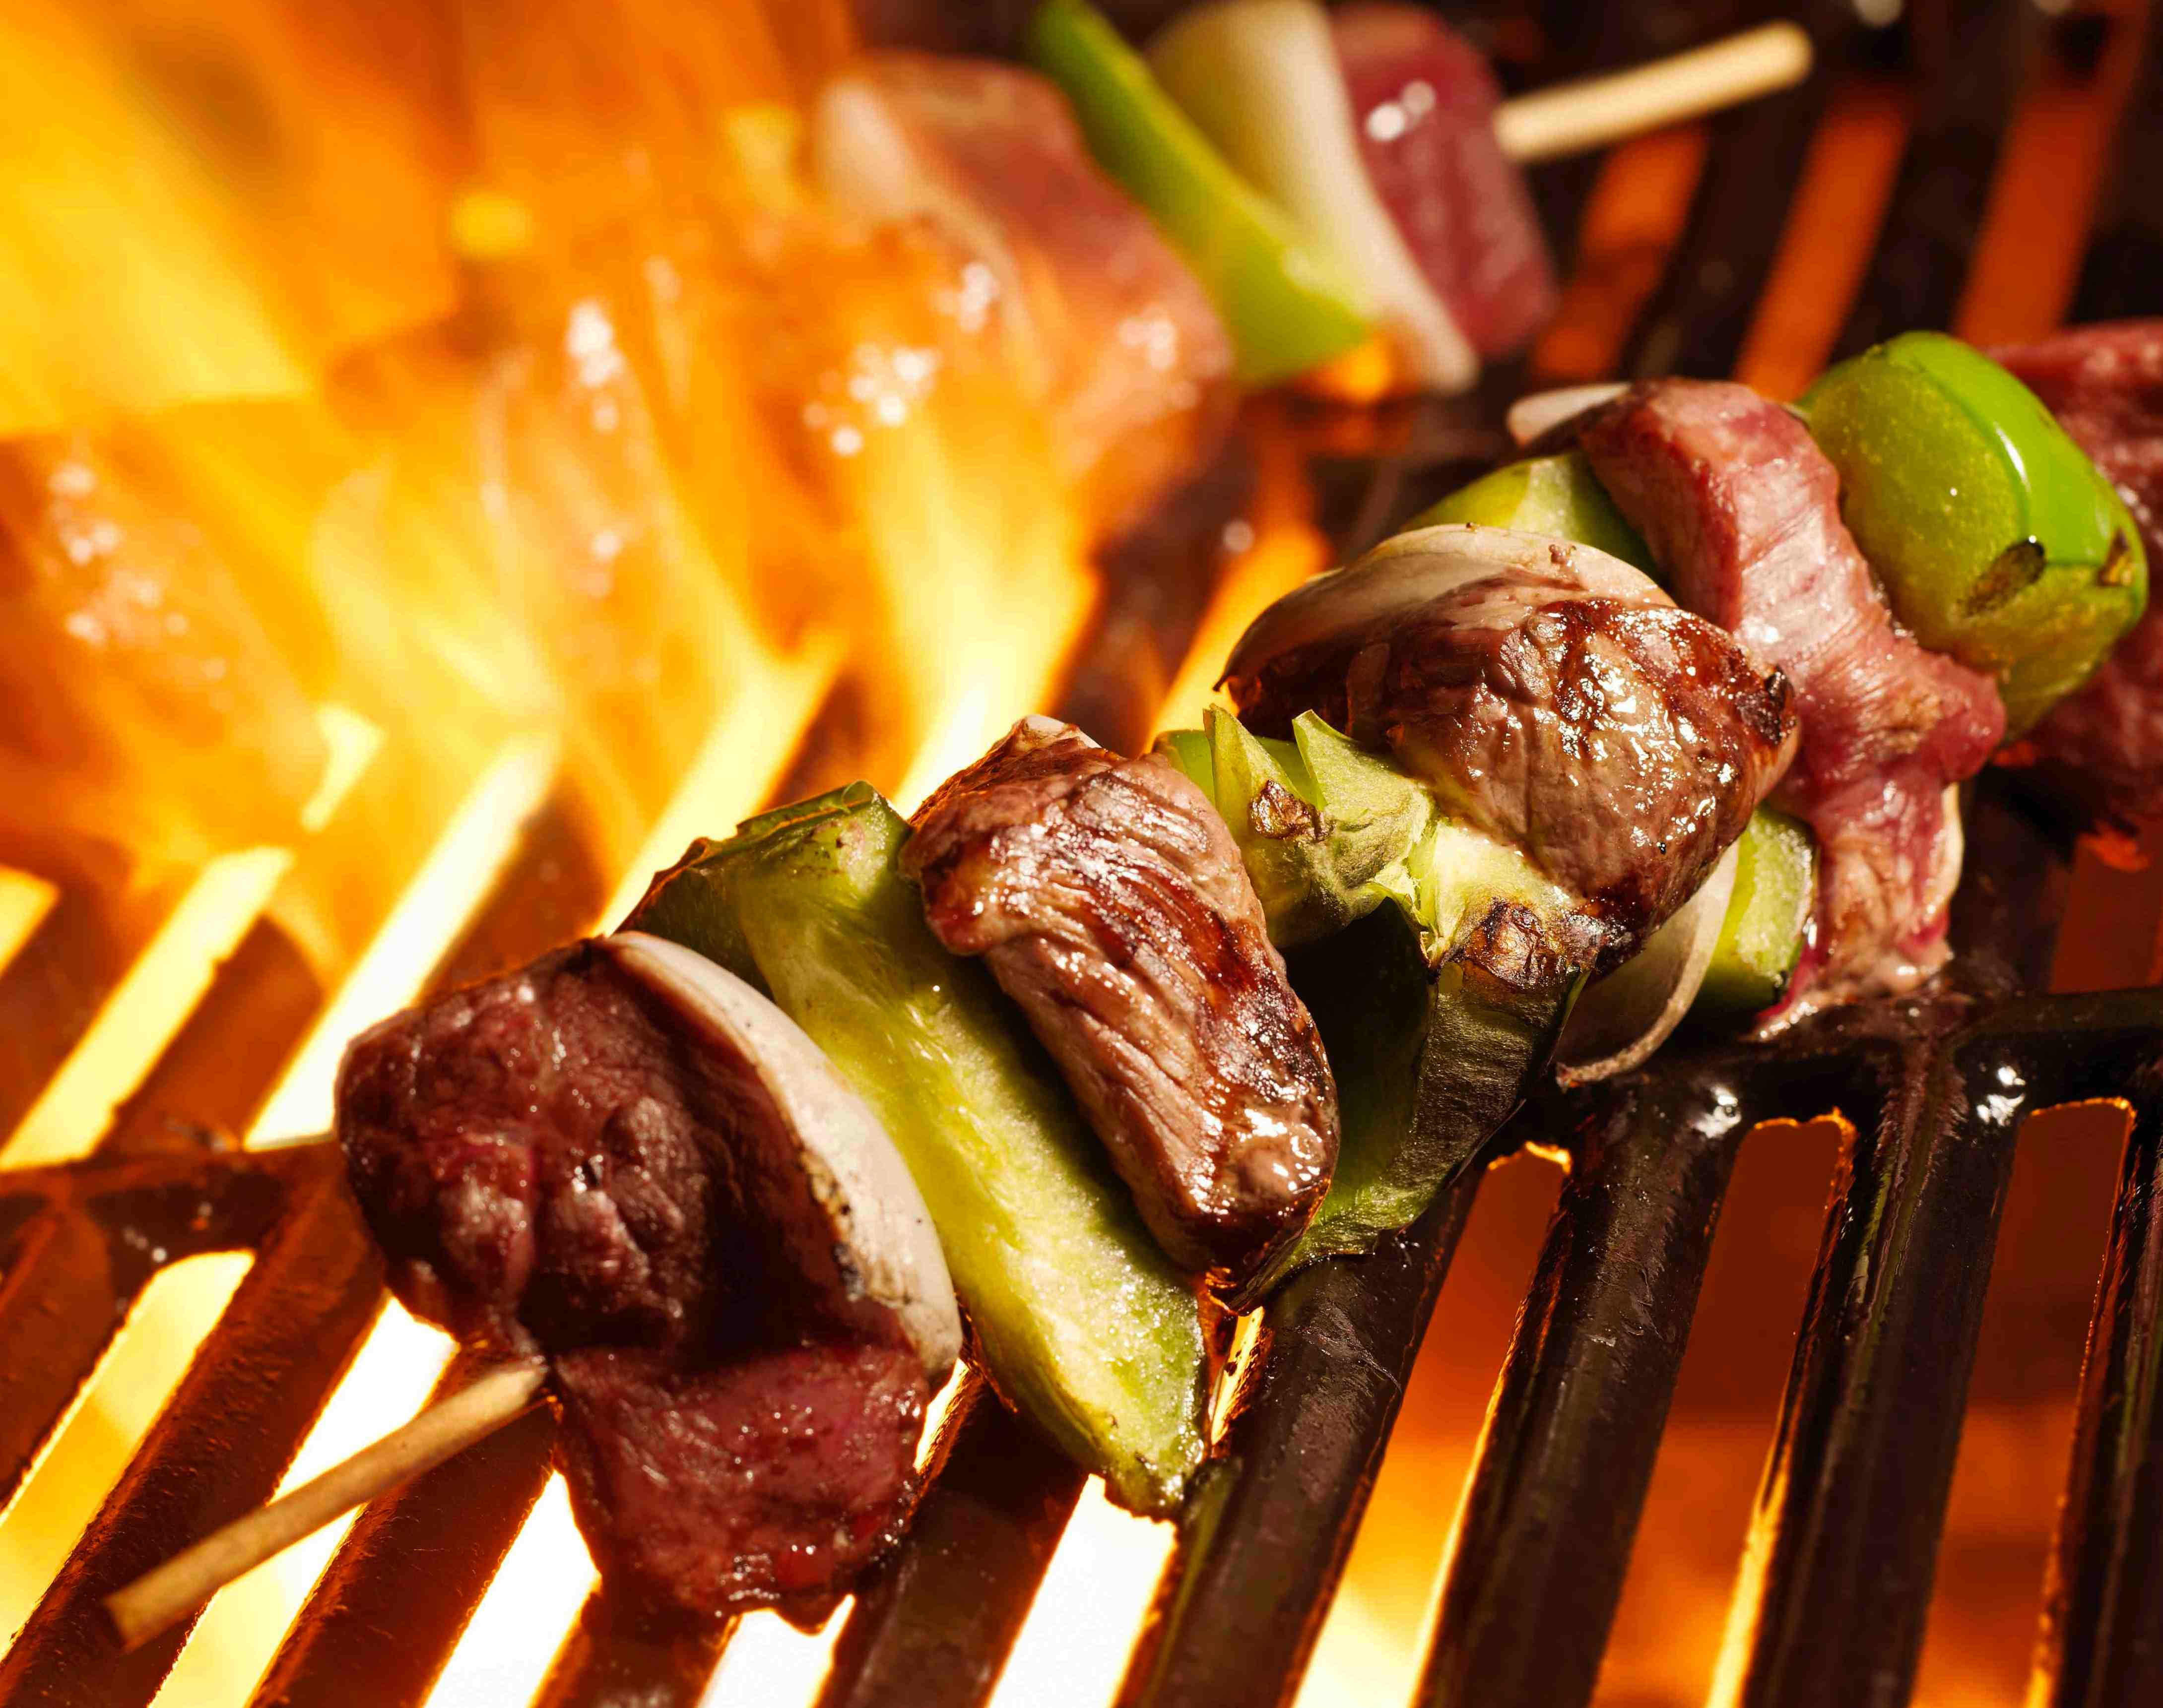 Grilled venison with fresh veggies and maybe a light dash of your favorite marinade is an easy, delicious way to enjoy your hunting success.